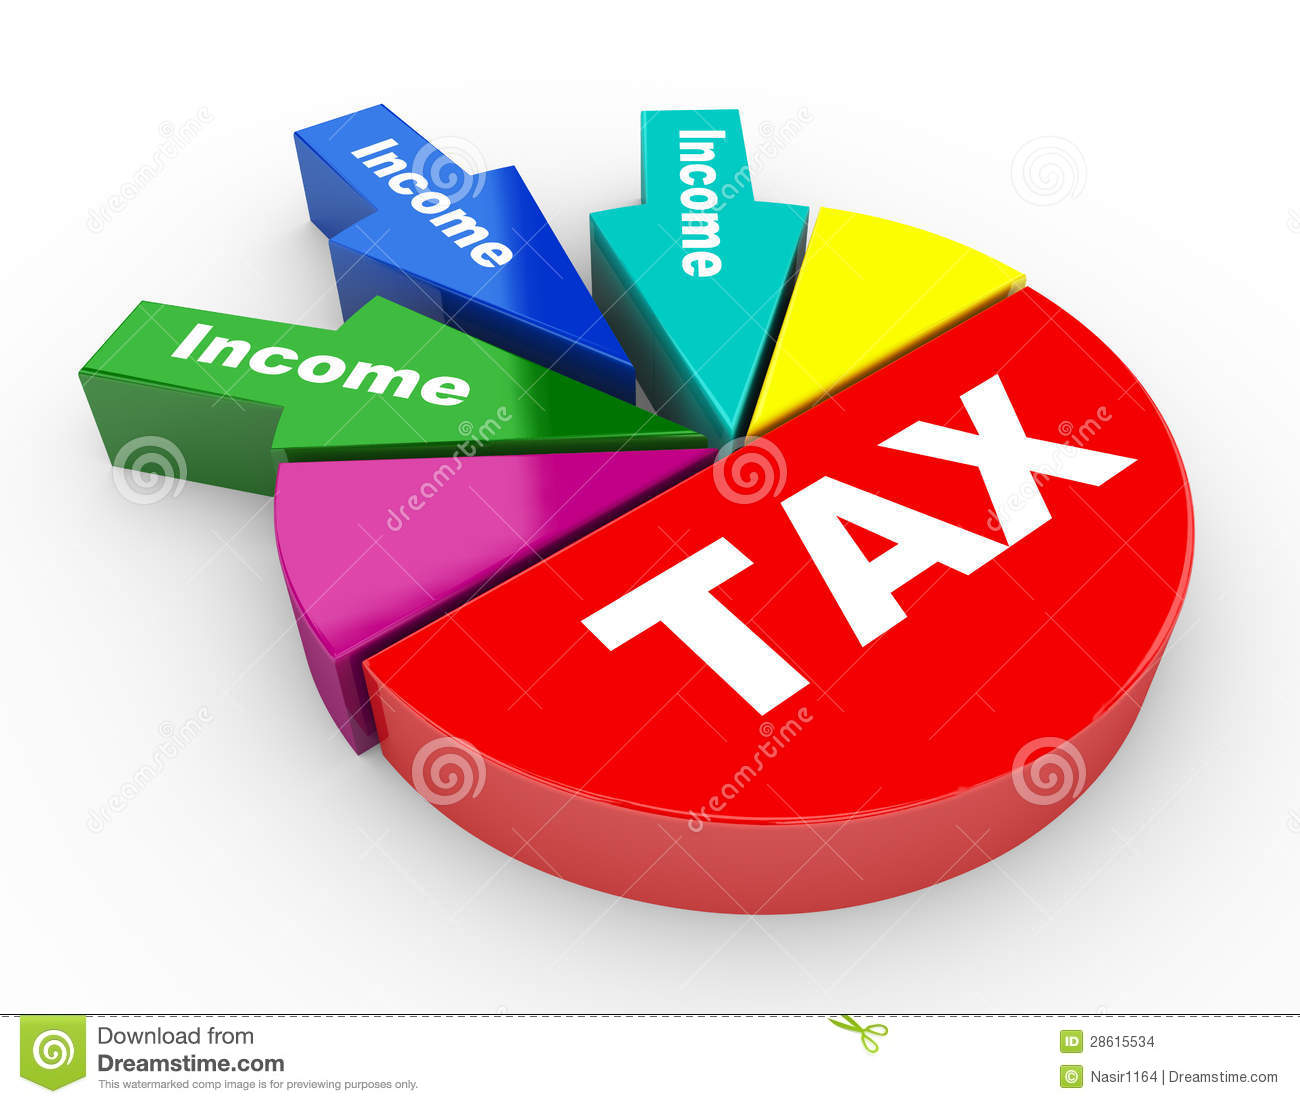 Personal taxation in india